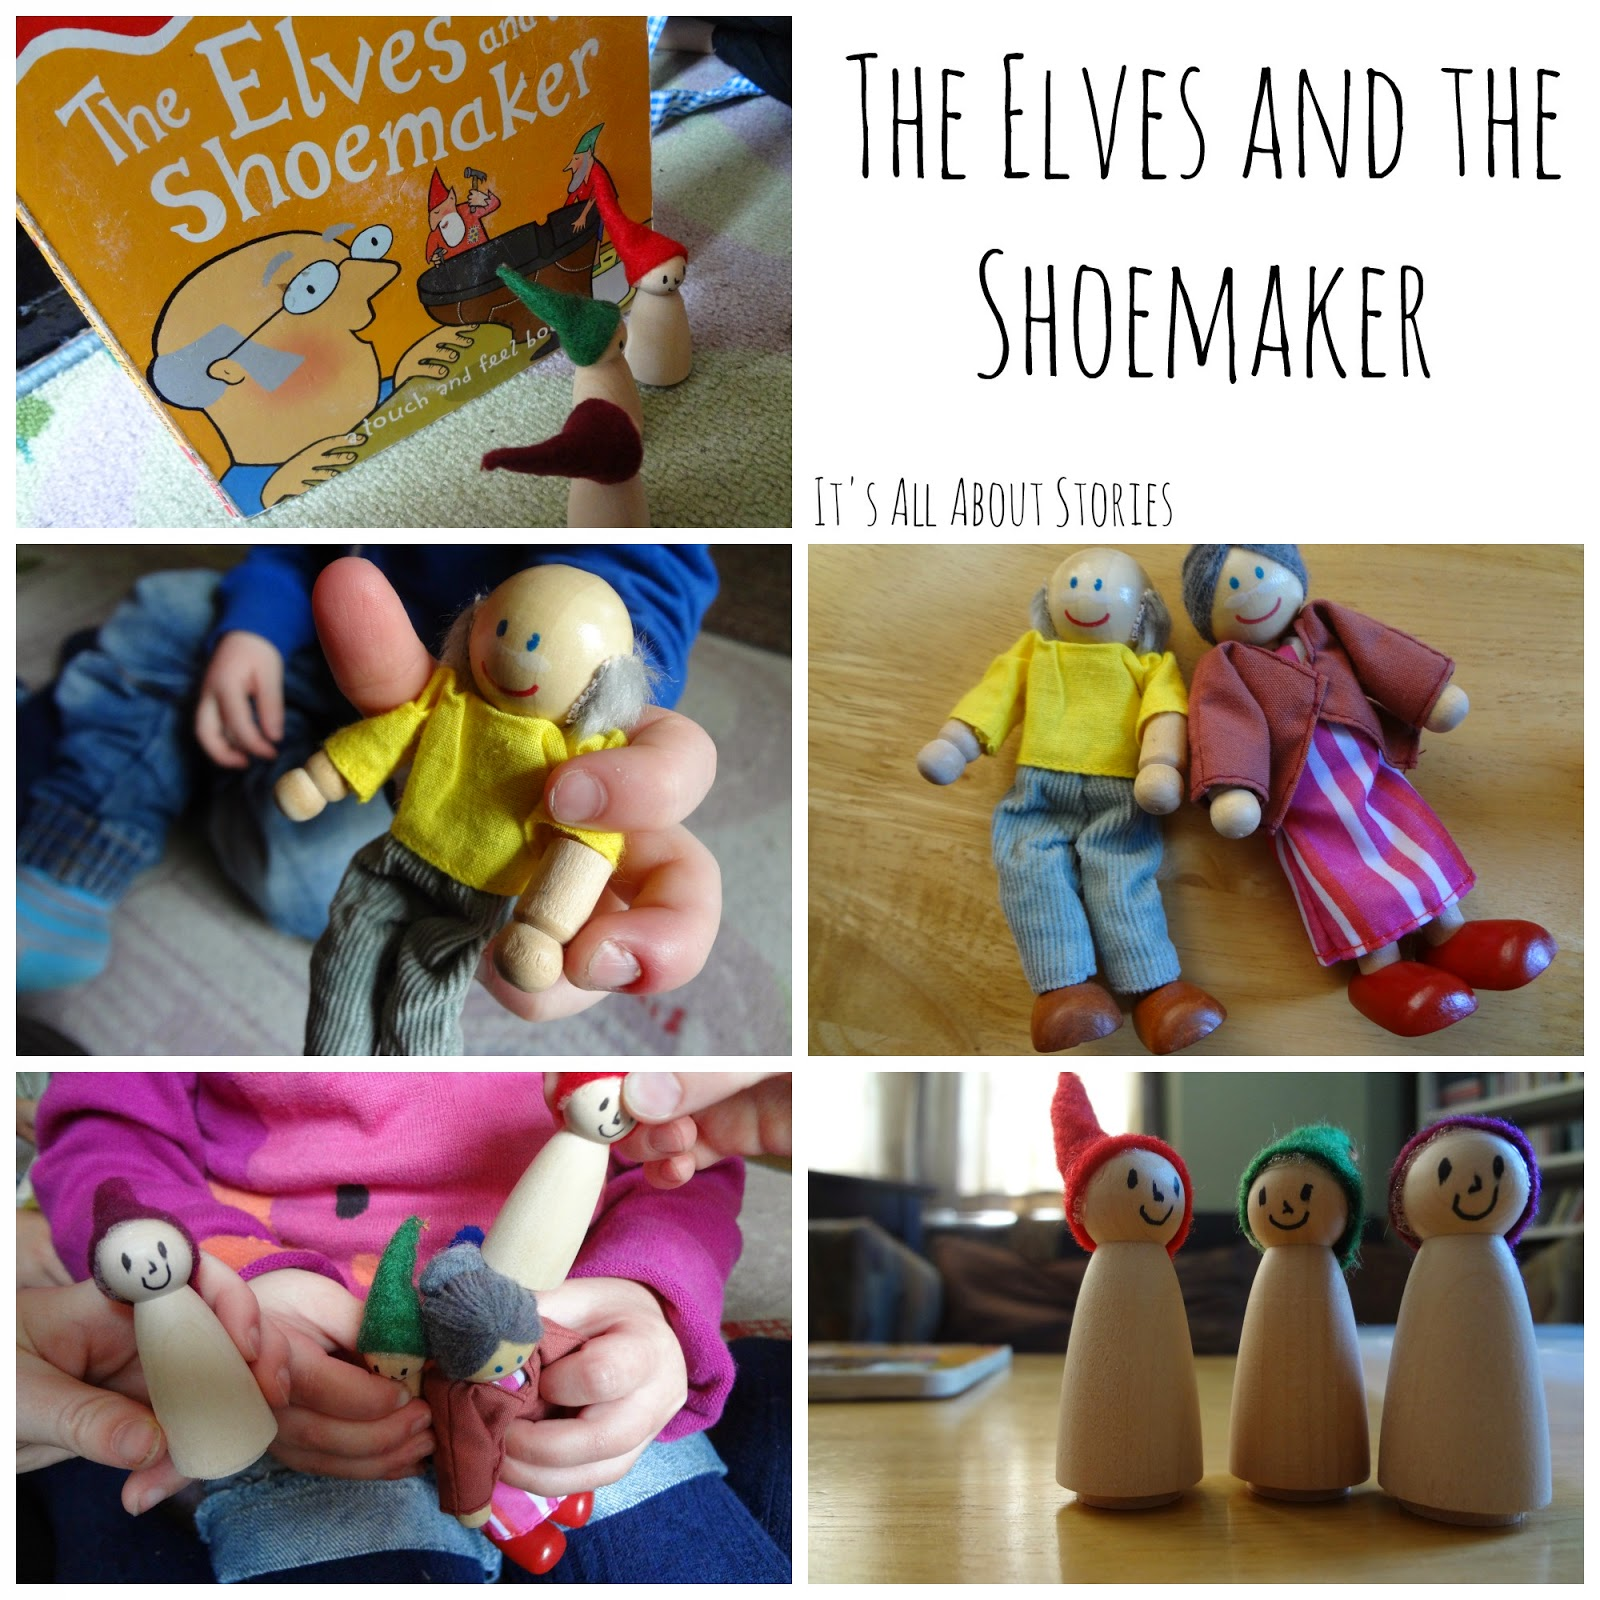 the elves and the shoemaker play The elves and the shoemaker [verse play] by peter bond a grimm fairytale told as a short play in verse an honest cobbler is helped to make ends meet by a pair of hard-working elves read the complete script on the lazy bee scripts web site.